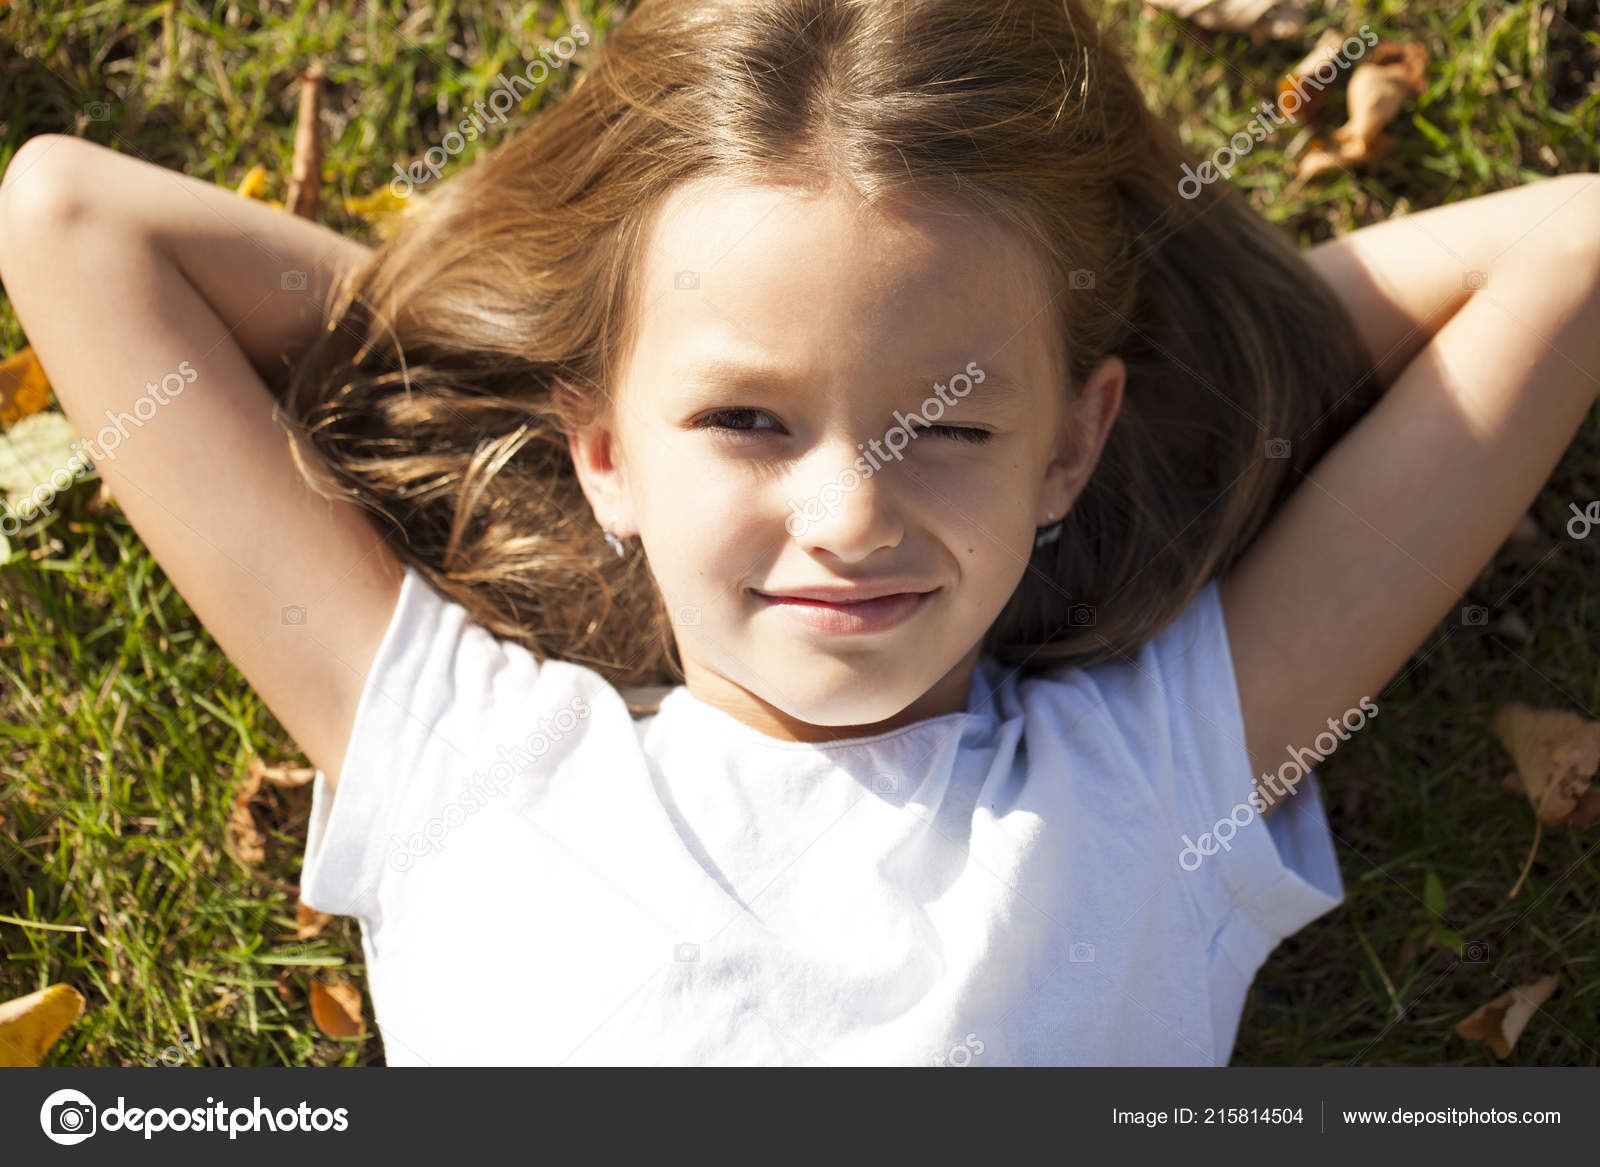 Are not young brunette teen outdoors similar situation